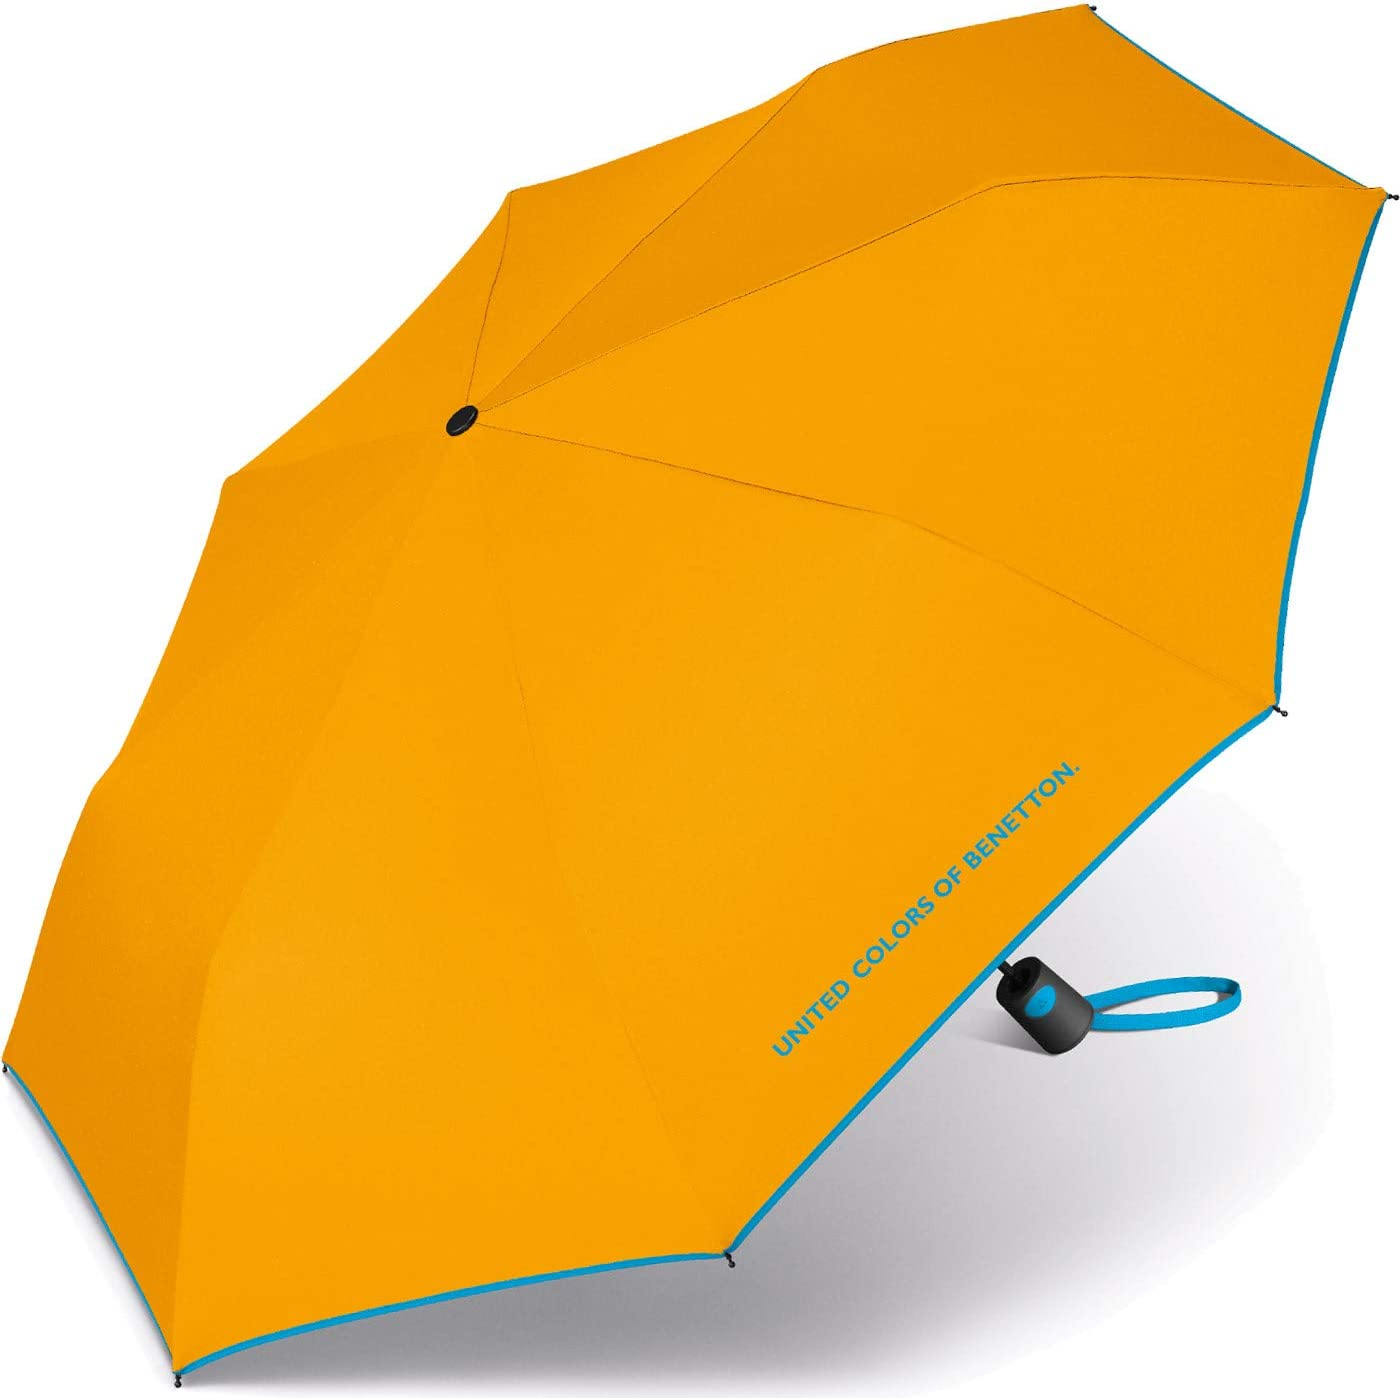 8 tiges de 95 cm de diam/ètre. Parapluie Mini Femme Automatique United Colors of Benetton Jaune